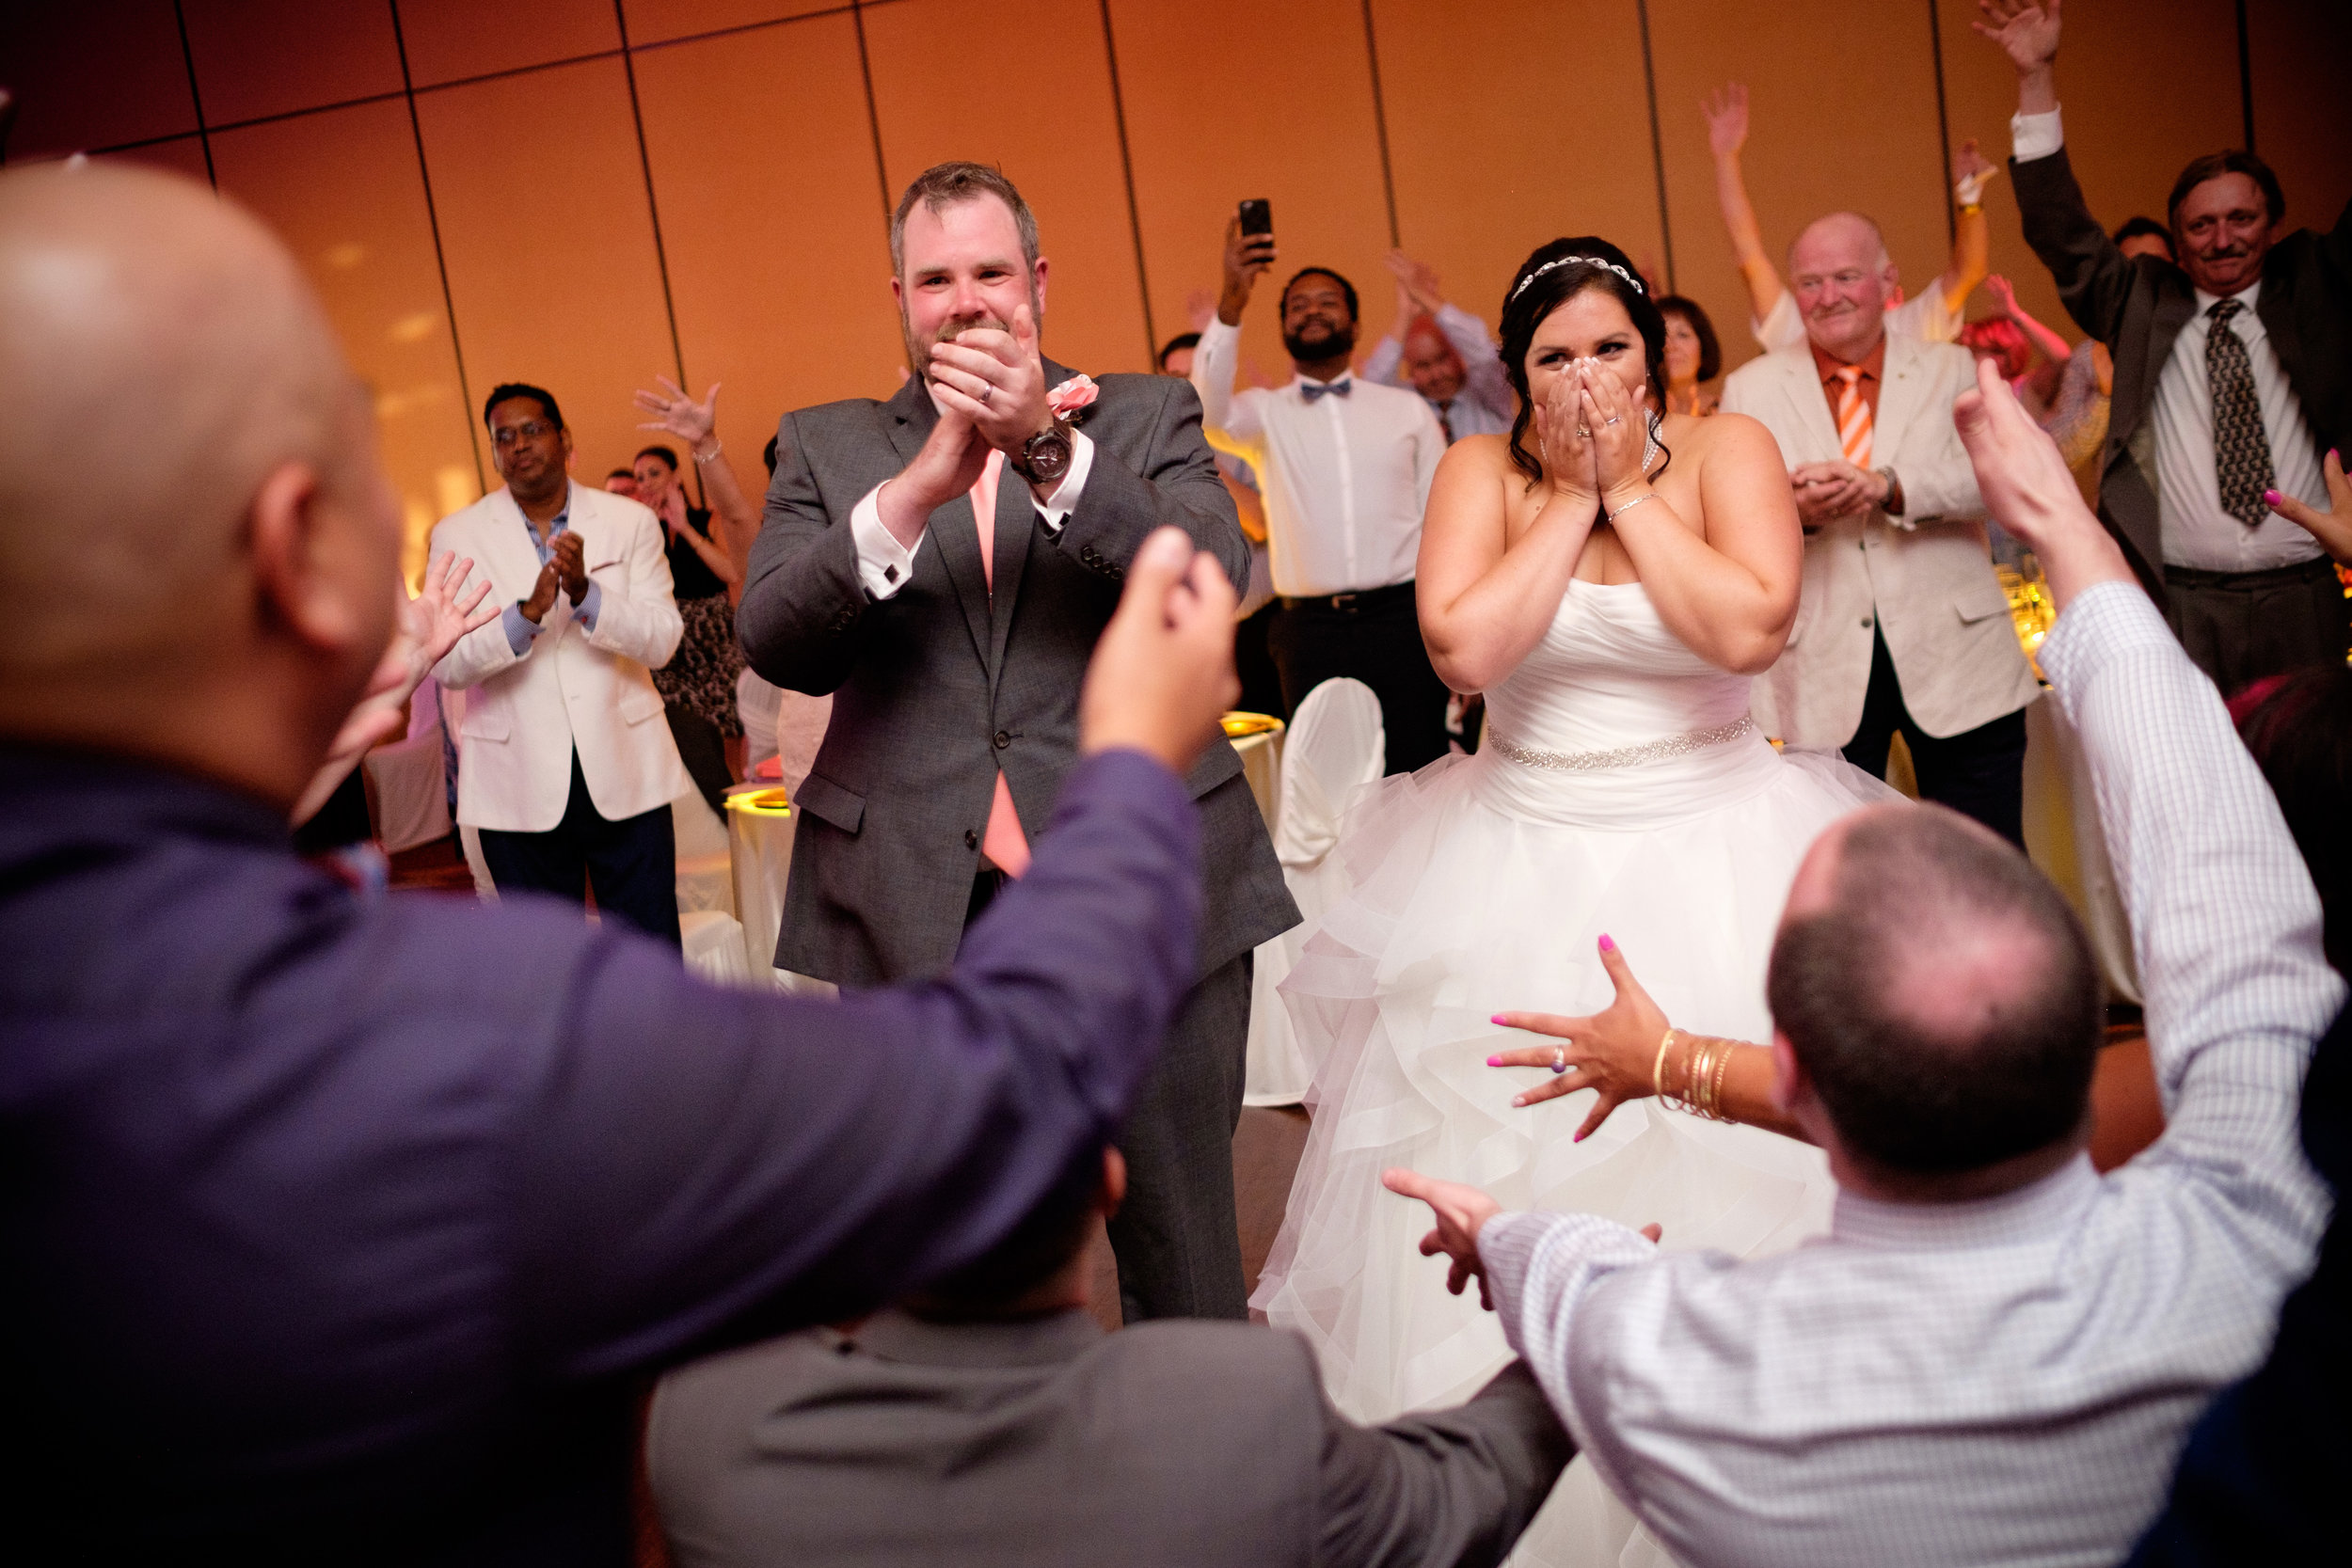 This was one of the best moments of the year as Melanie and David were surprised by their theatre friends with an amazing flash mob at their wedding!